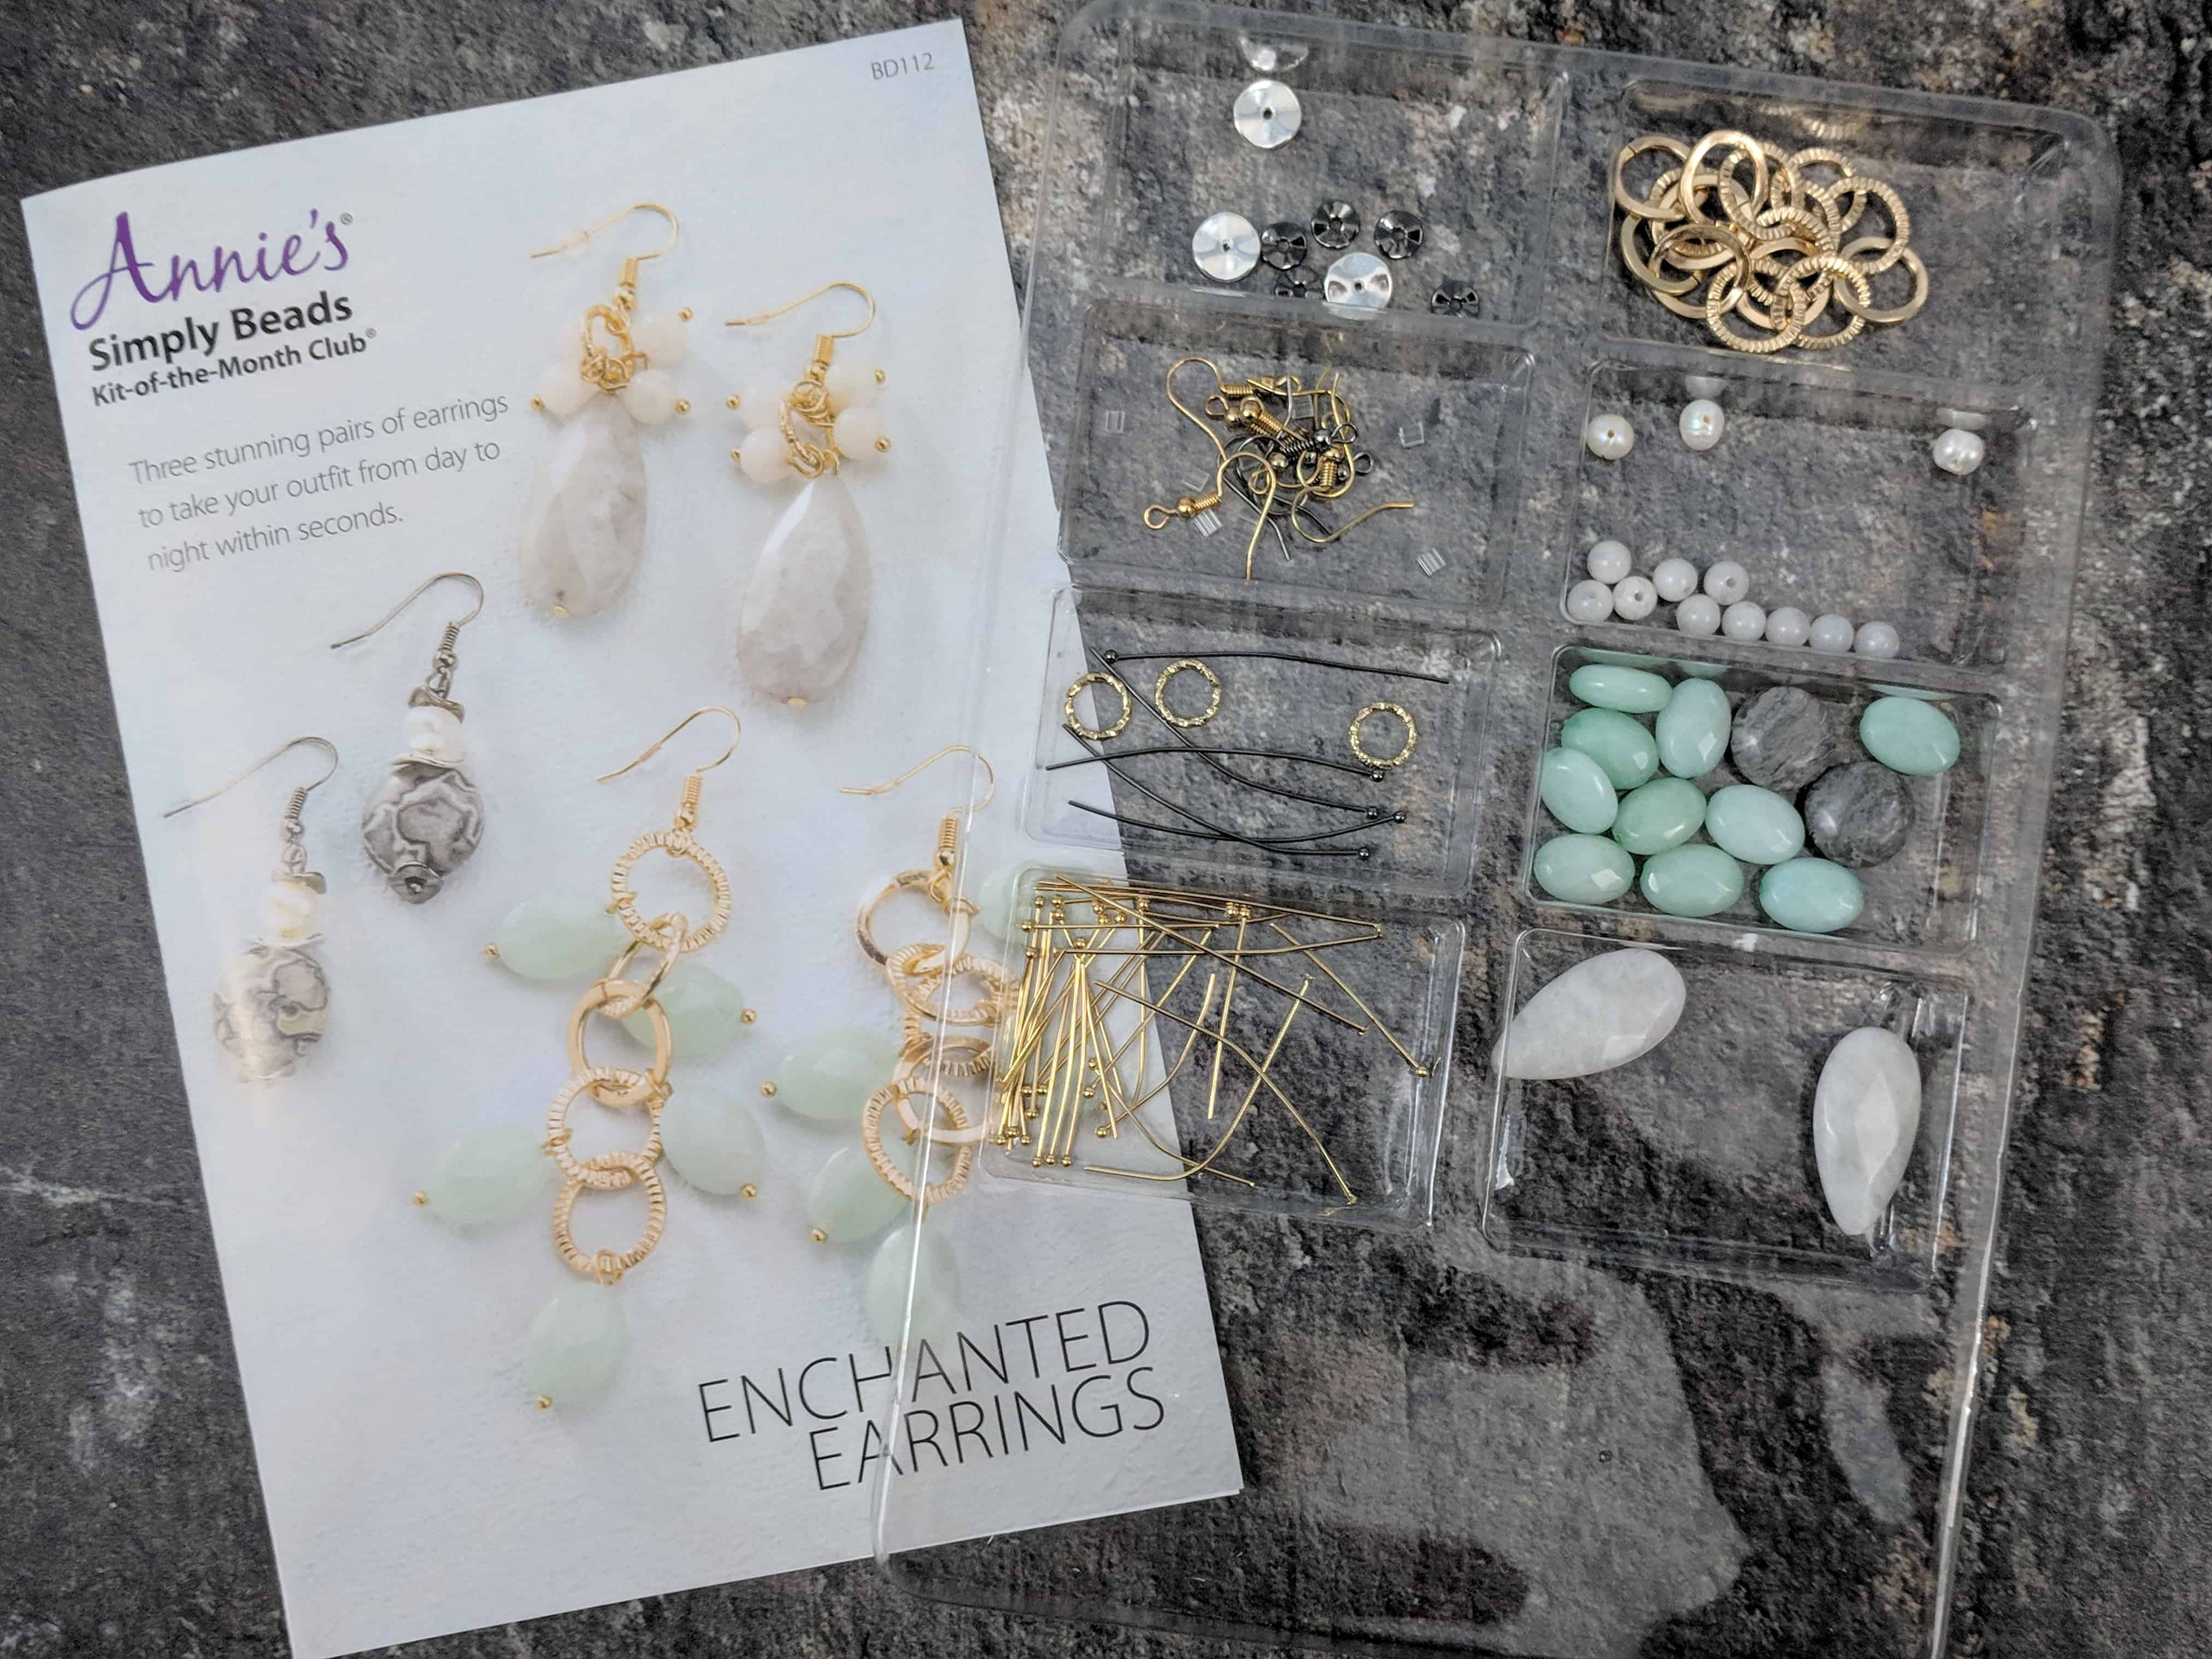 Annie's Simply Beads Kit-of-the-Month Club Subscription Box Review – September 2018